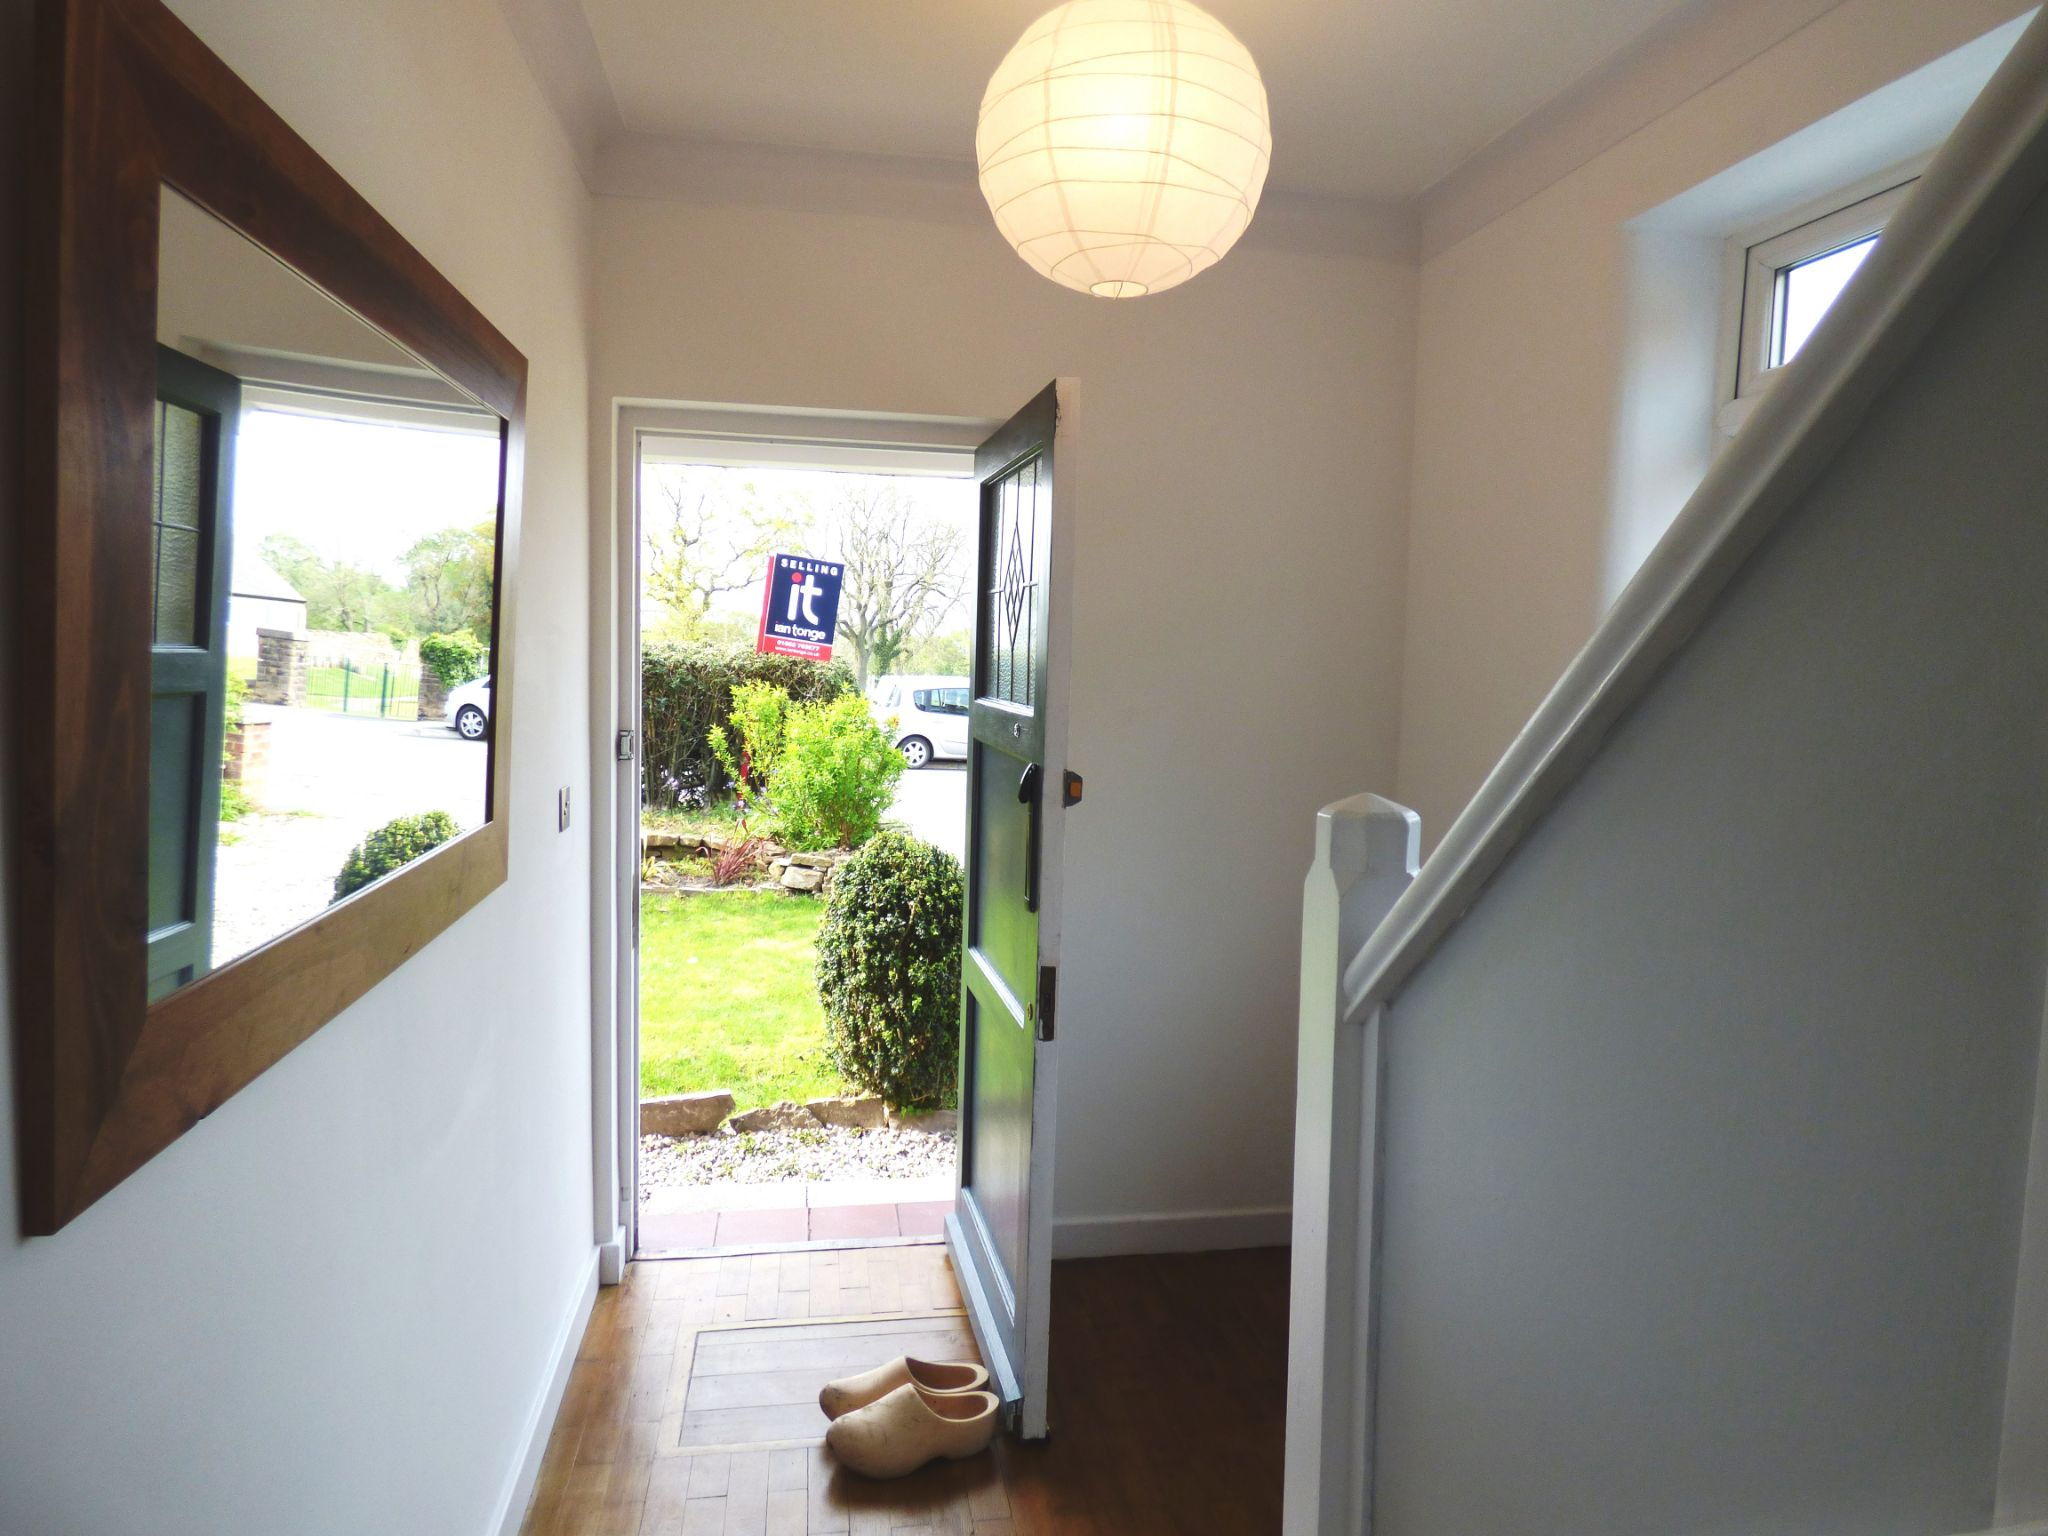 3 Bedroom Semi-detached House For Sale - Hallway